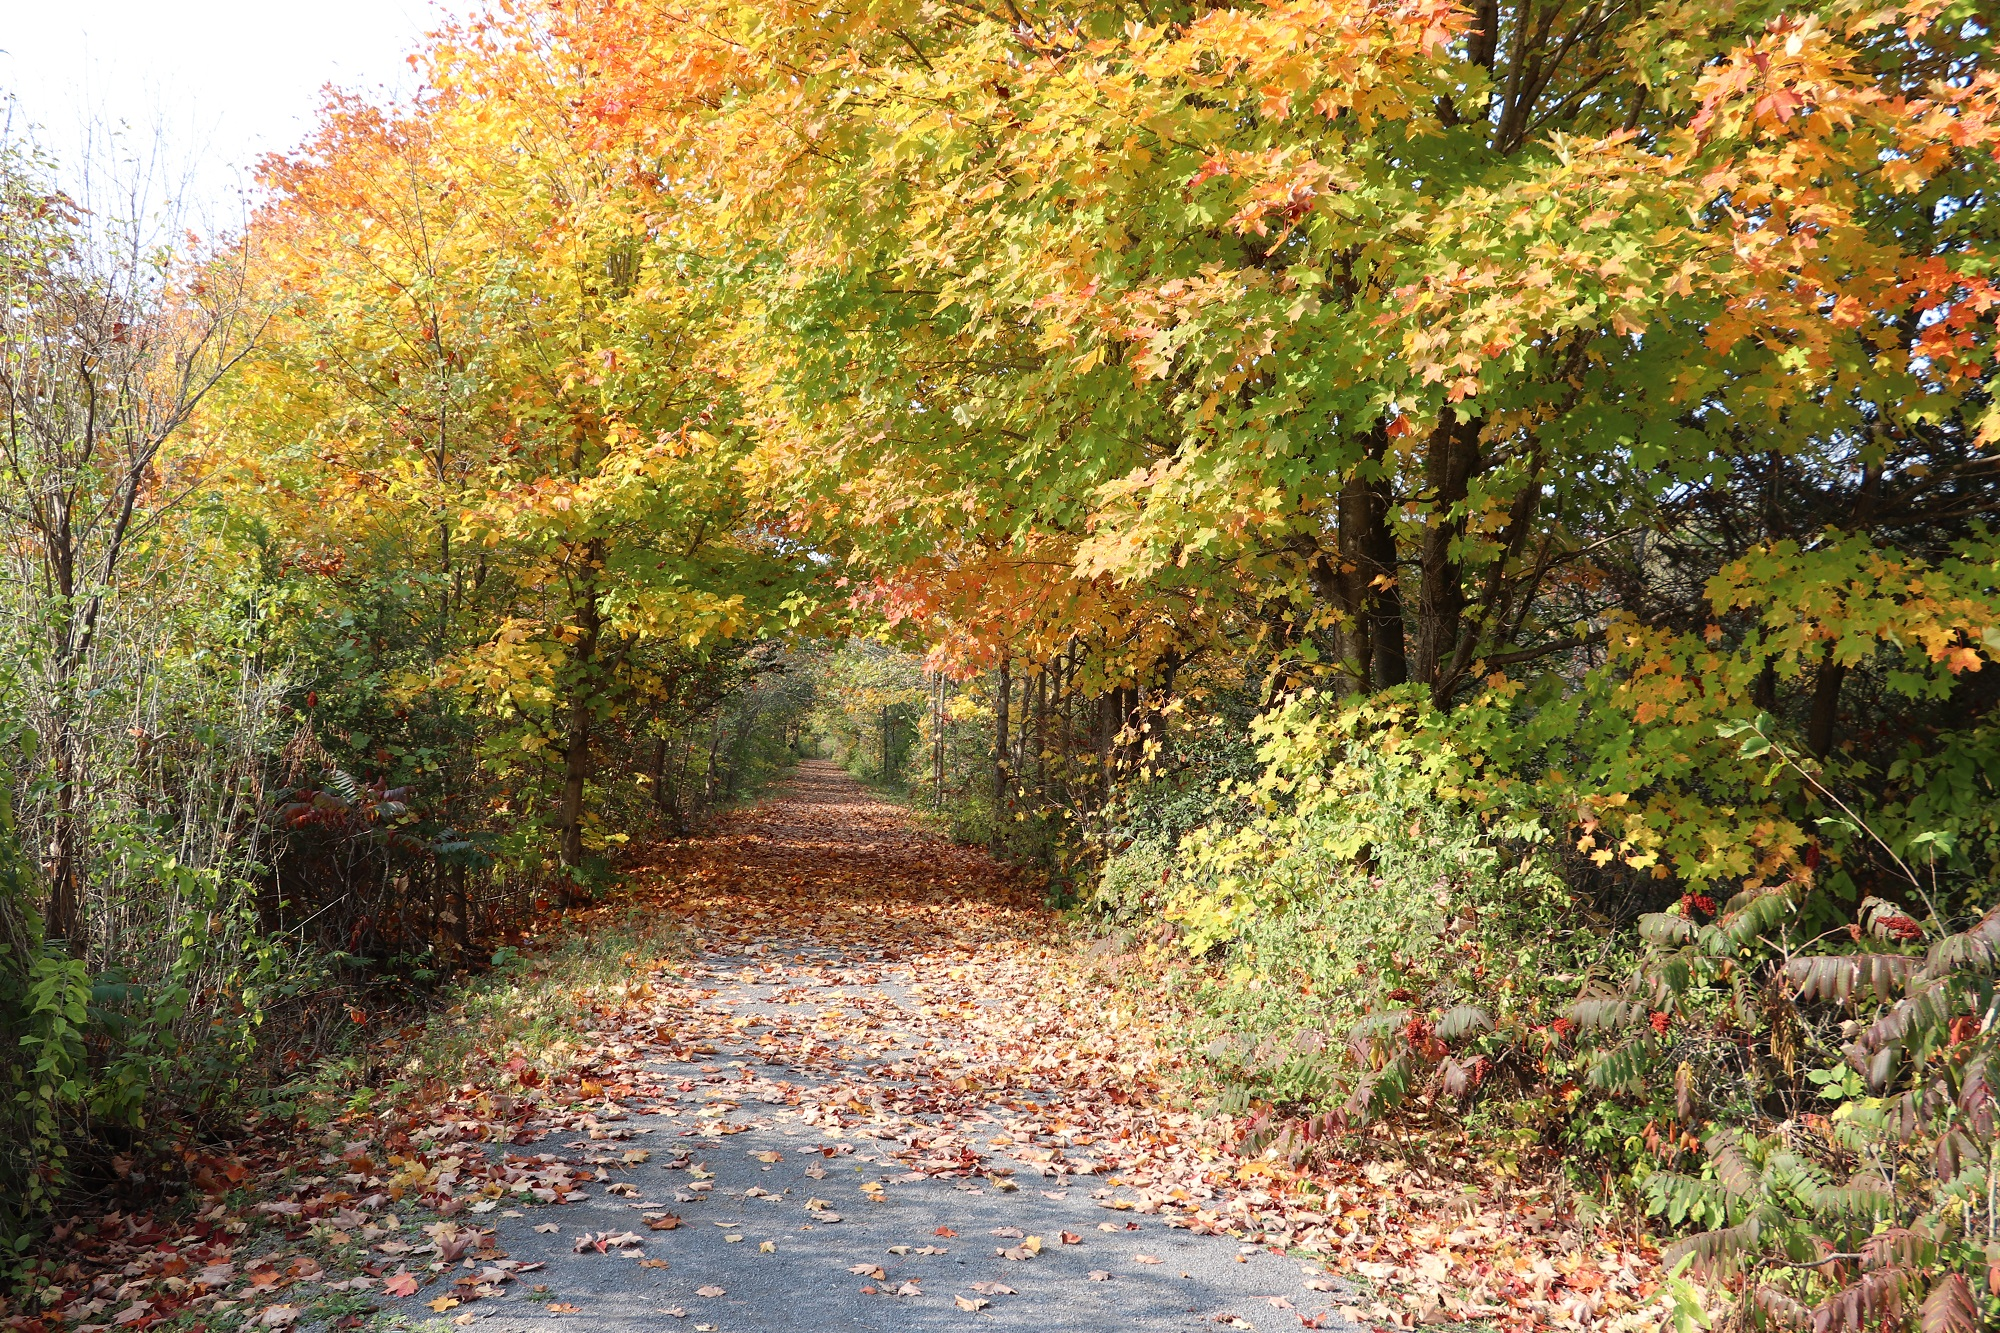 5aaa. Trail with Leaves.jpg